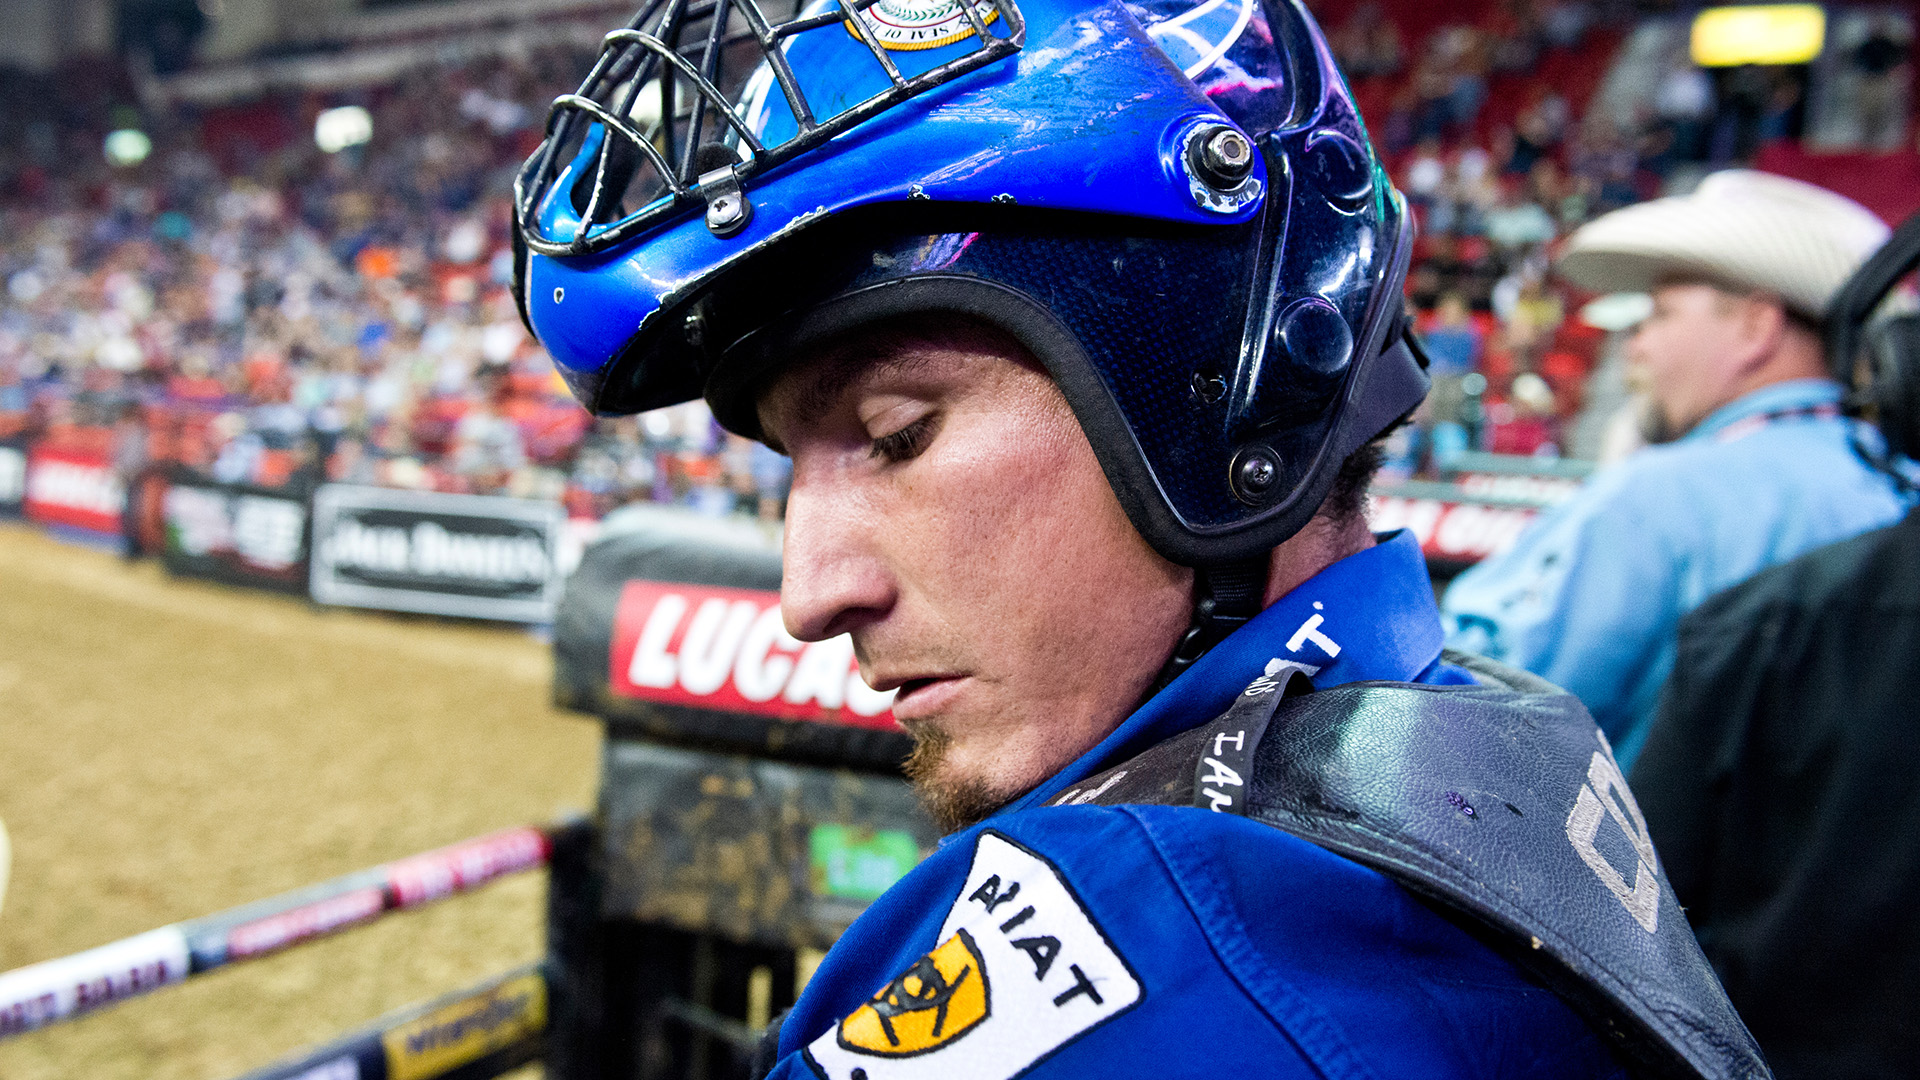 Dirteater expects Bismarck to help potential Team USA Wolves riders gain experience for Global Cup